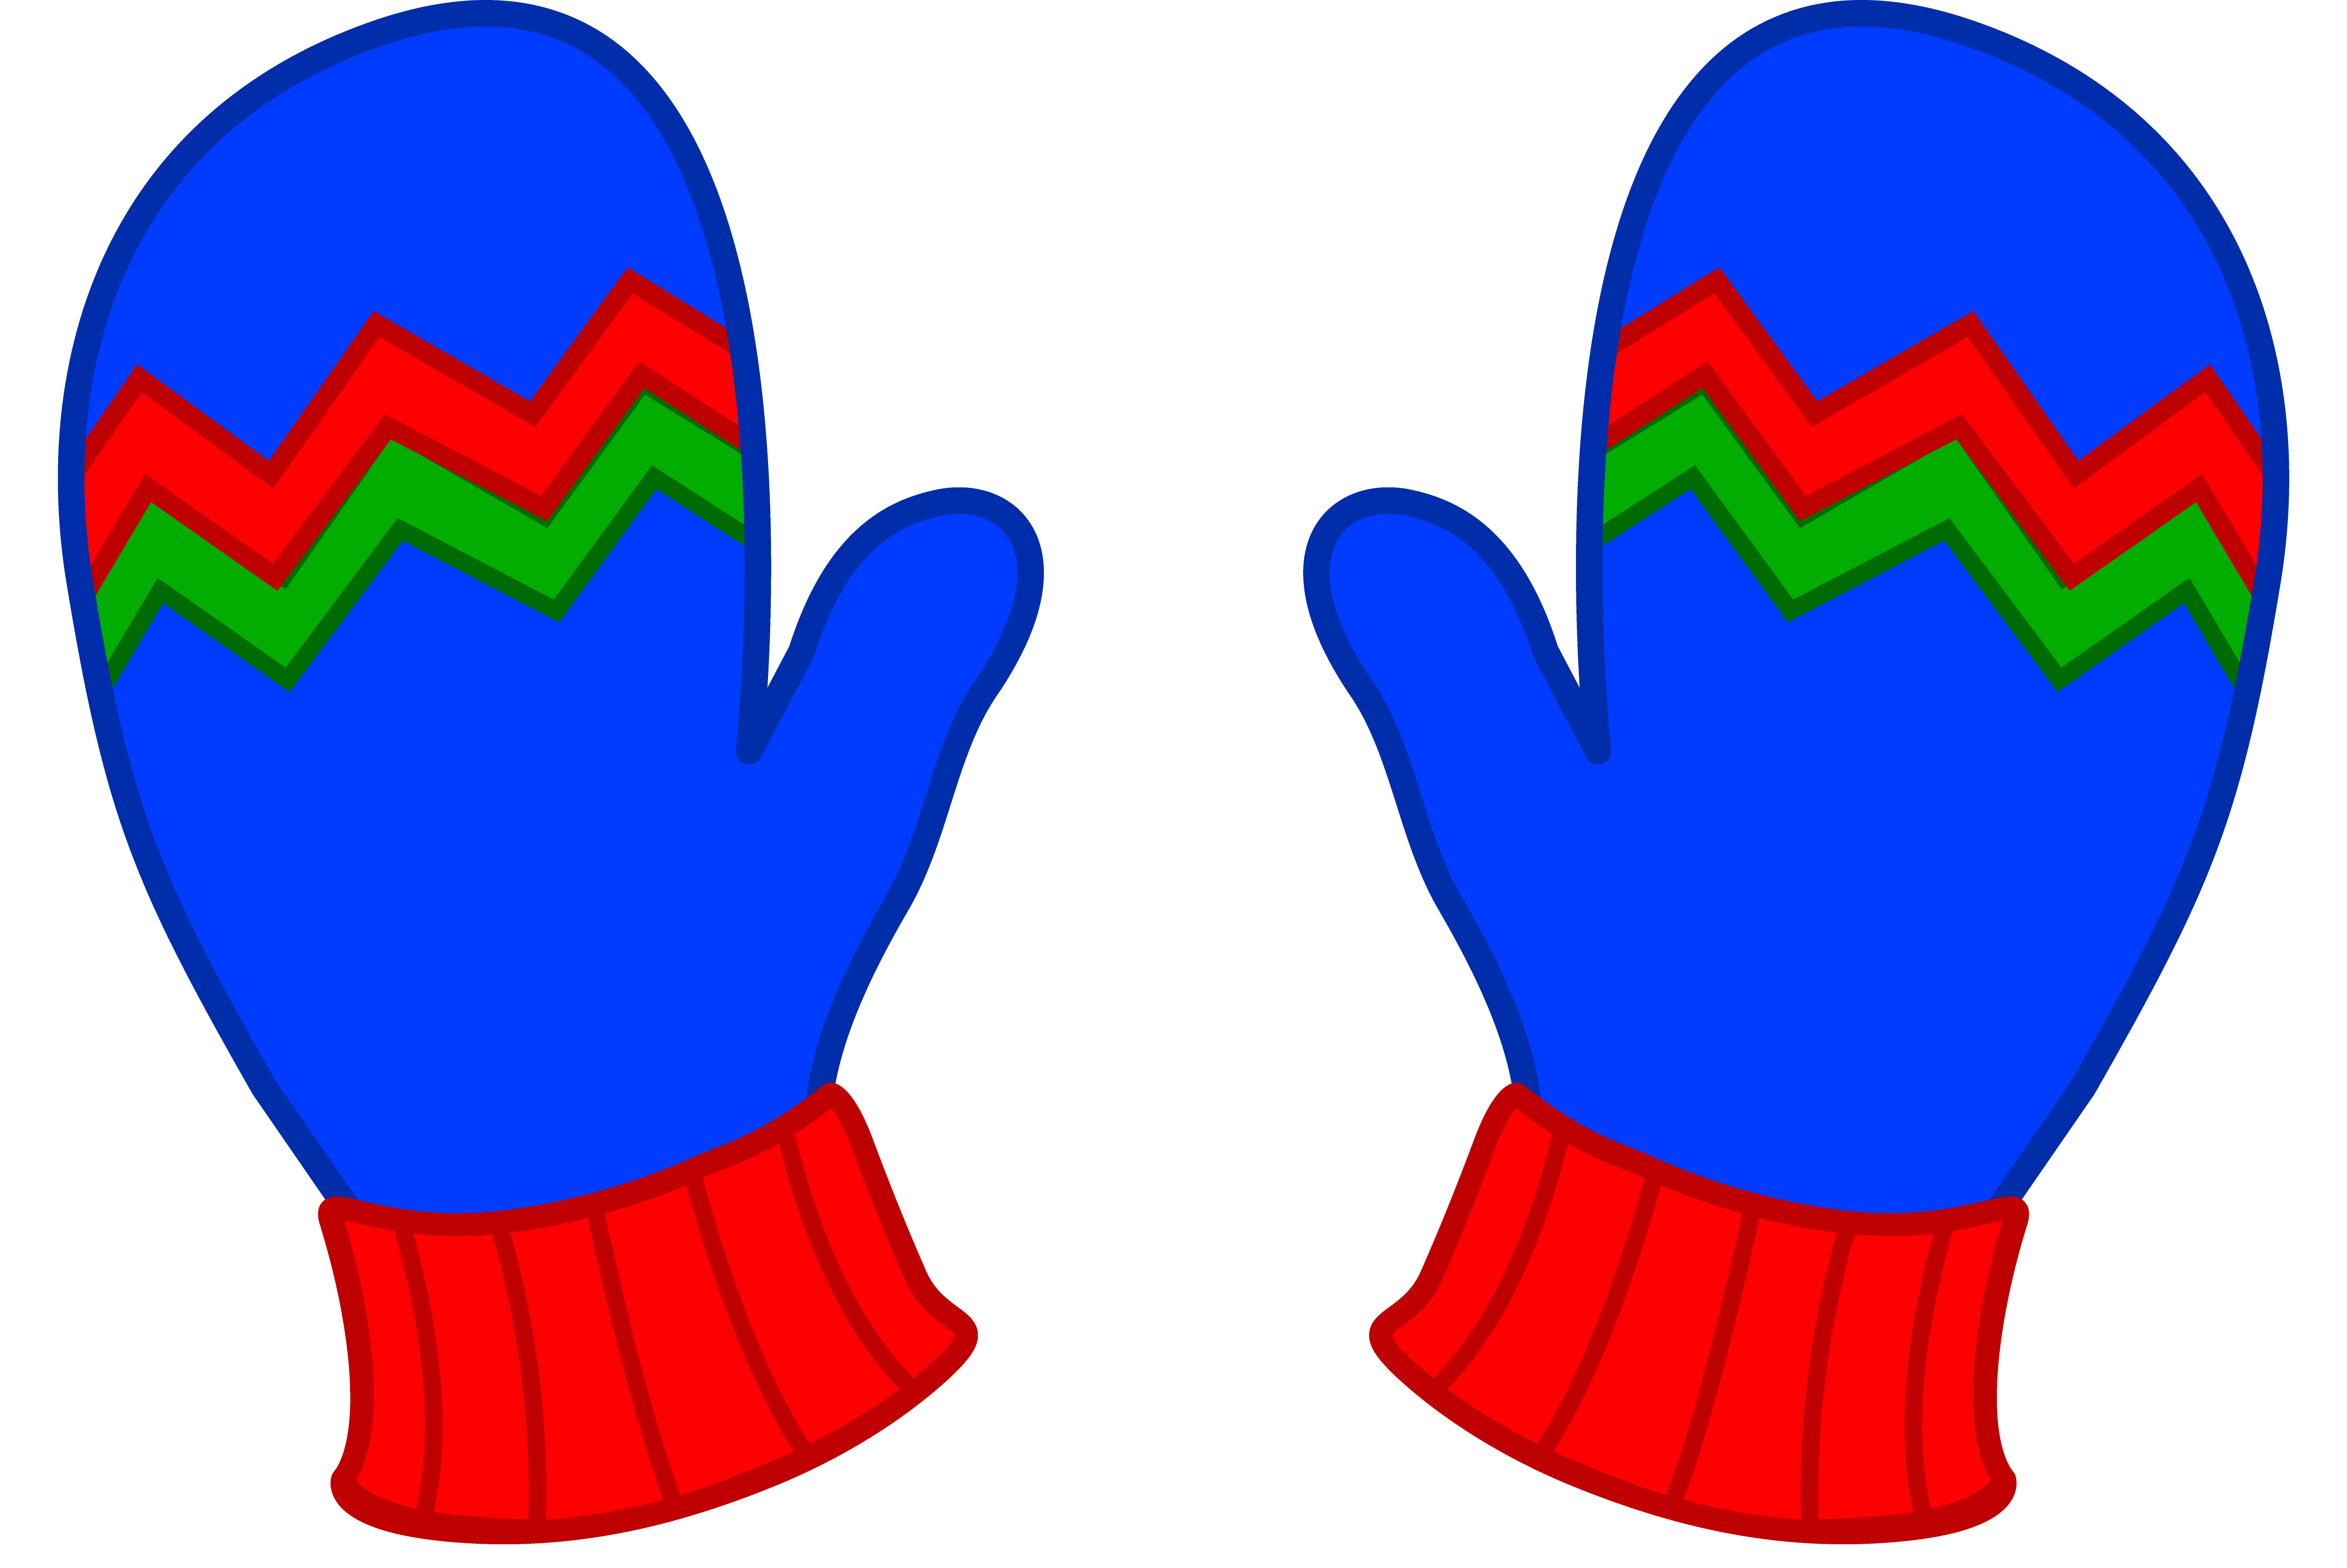 Mitten clipart. Free cliparts download clip